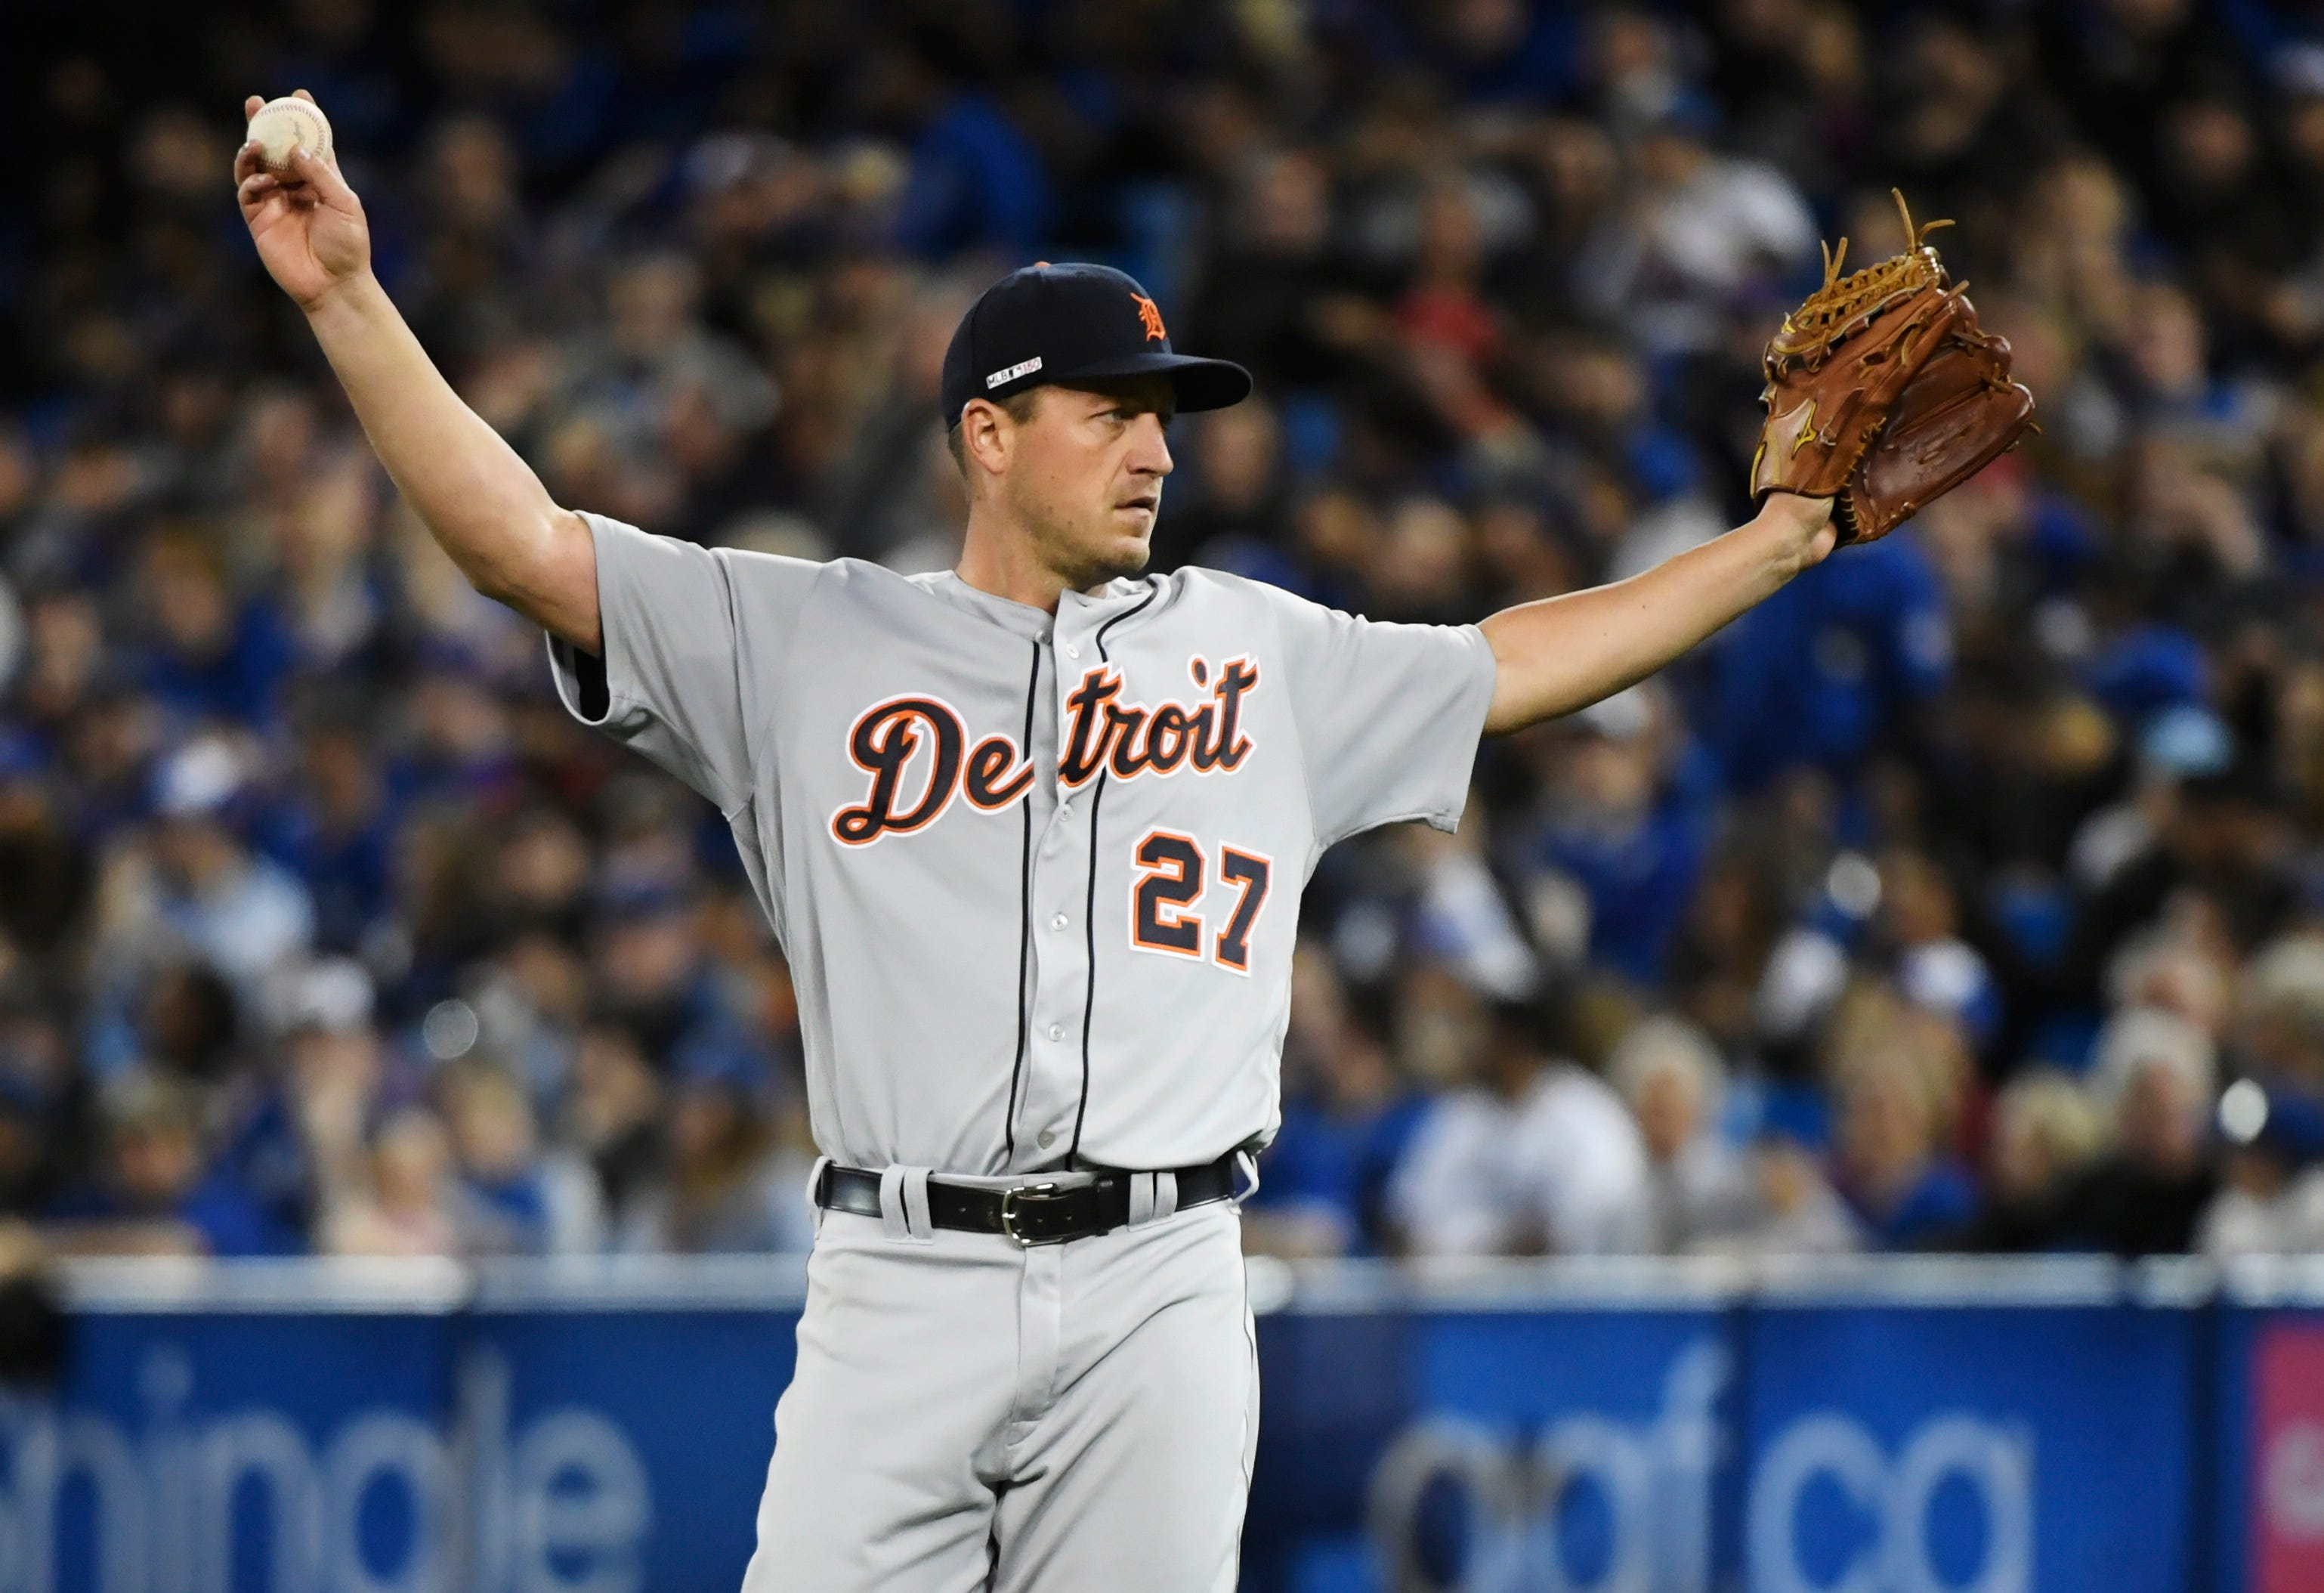 Tigers starting pitcher Jordan Zimmermann reacts after giving up a hit to Blue Jays left fielder Teoscar Hernandez, not shown, during the seventh inning in Toronto on Thursday, March 28, 2019.